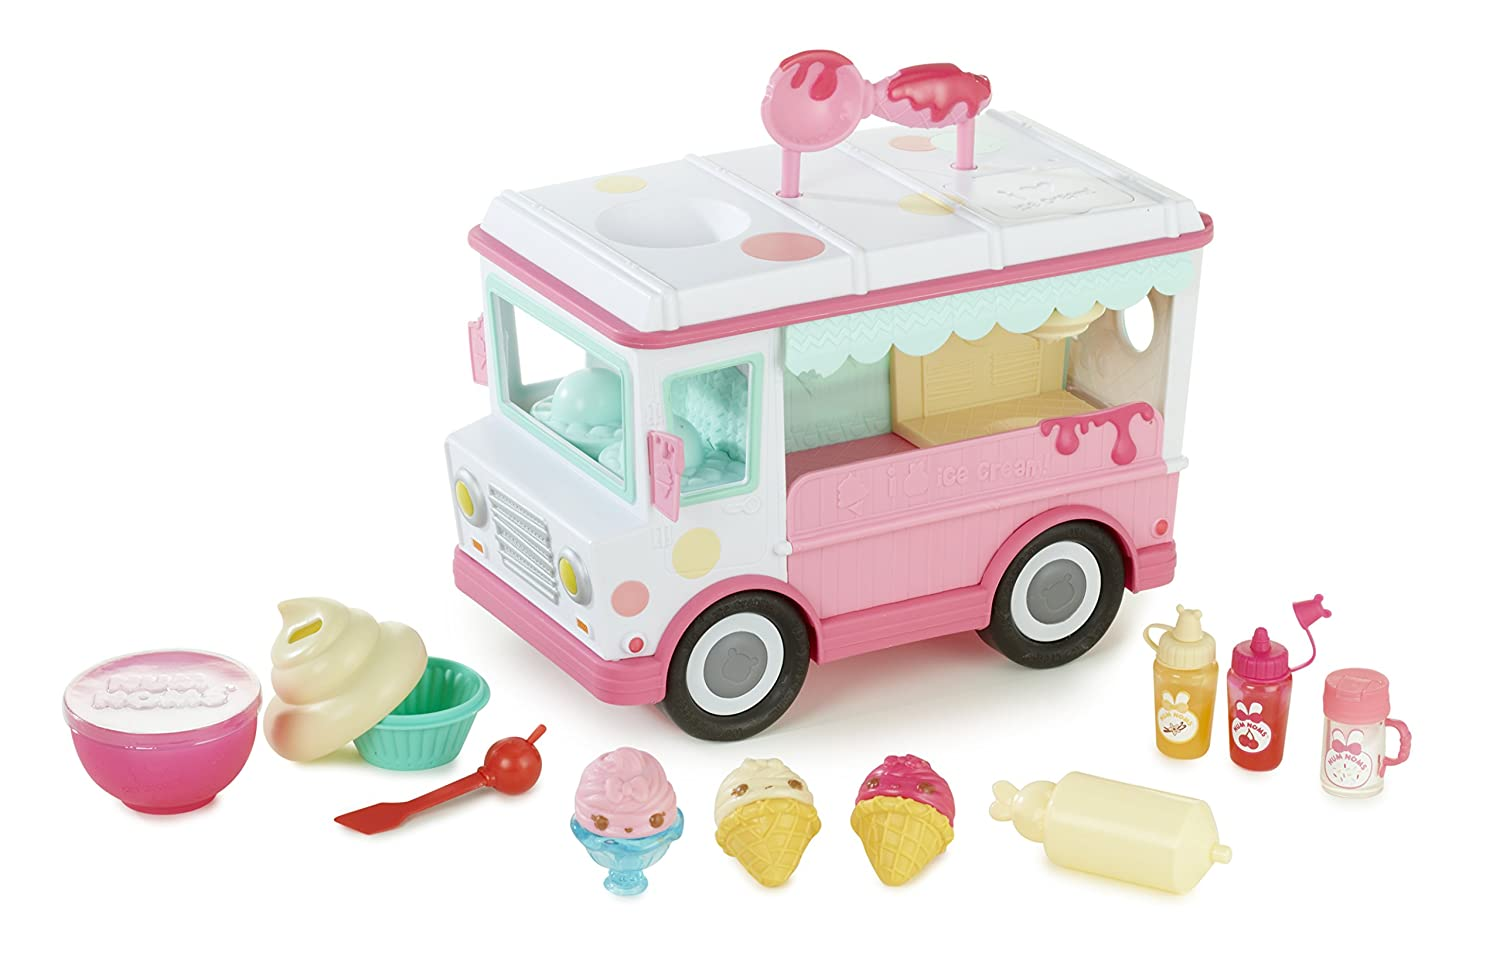 top toys 2017 - 2018 Num Noms Lipgloss Truck Craft Kit